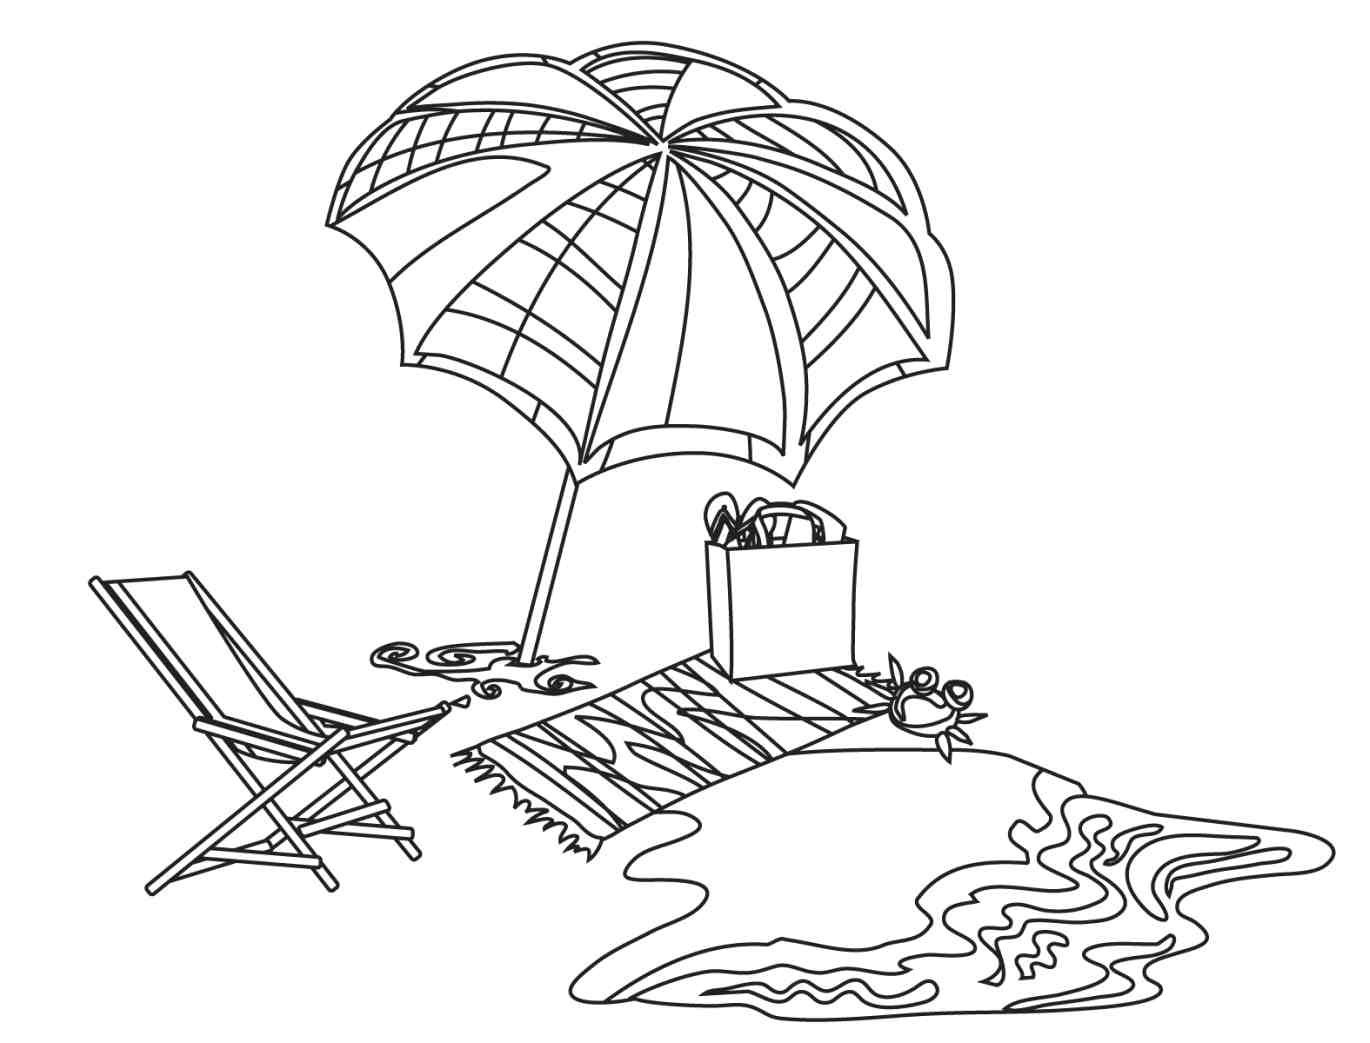 coloring pages beach scenes beach coloring pages beach scenes activities pages coloring scenes beach